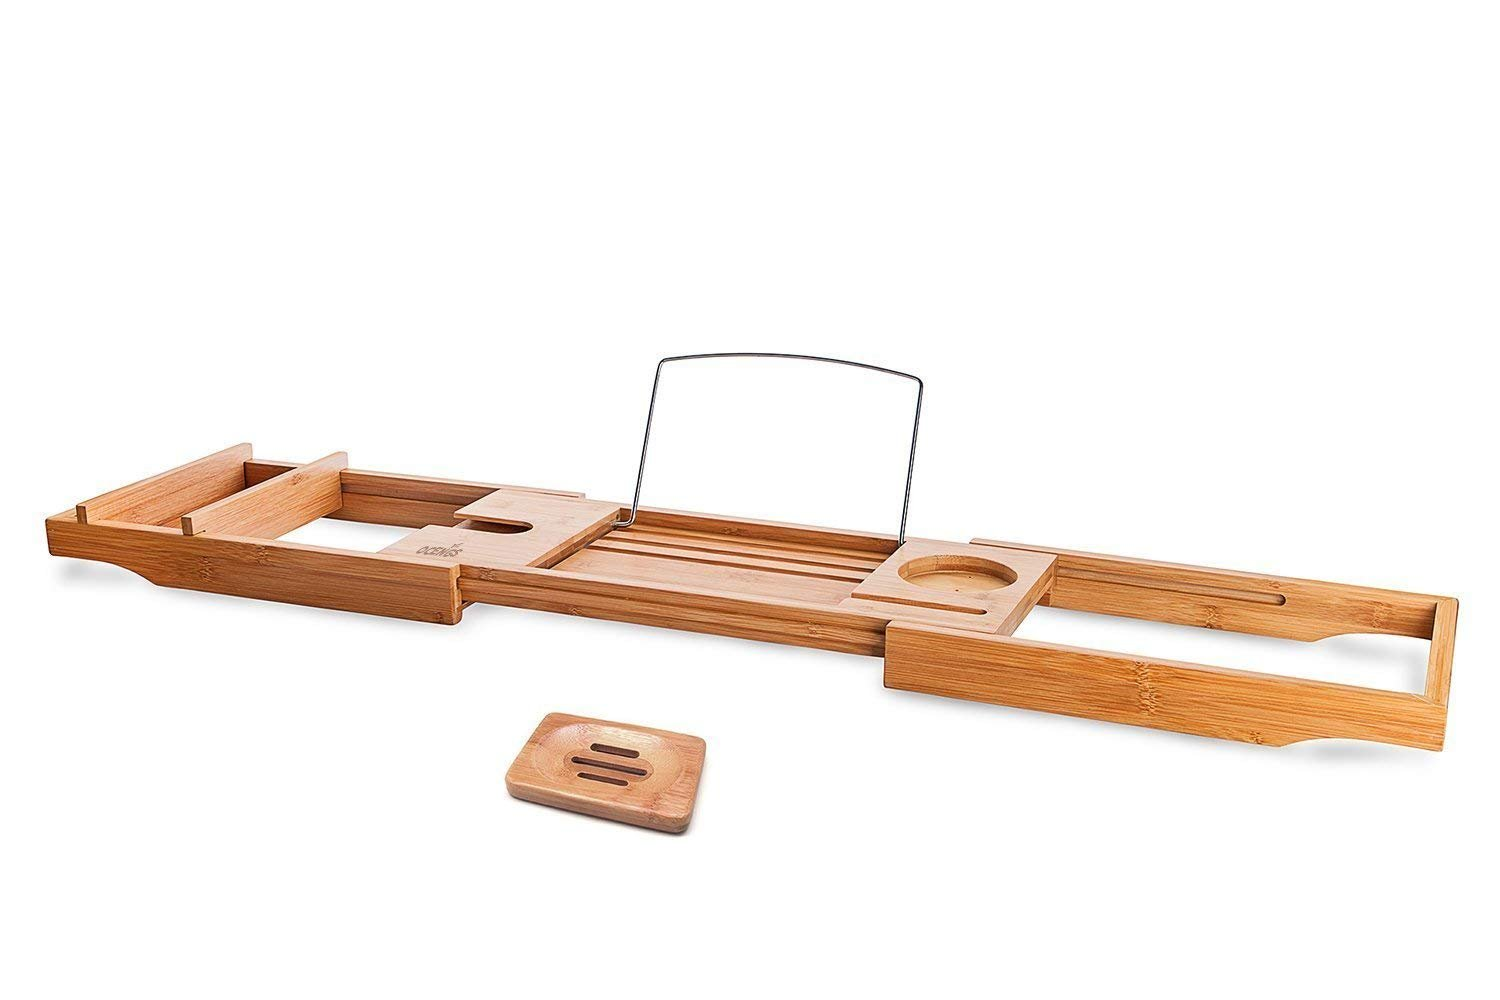 Luxury Bamboo Bath Caddy Tray,  Large Shower Bathtub Organizer Accessories With Extending Sides, Reading Rack, Wine Glass, Book, Tablet Holder and Phone Compartment, Bonus Soap Holder By OCENGS